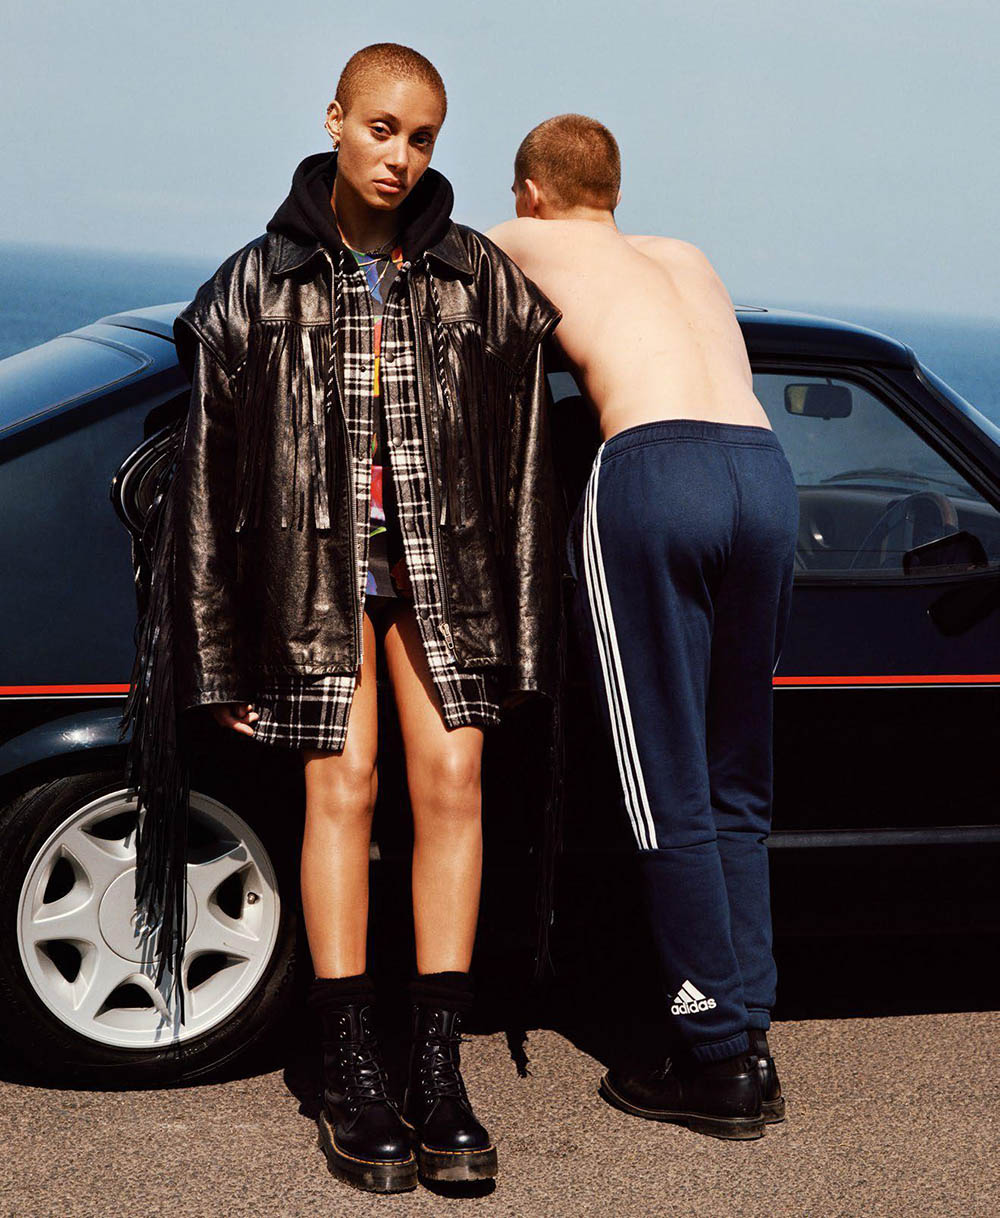 Adwoa Aboah and Oisin Murphy by Alasdair McLellan for Vogue Paris August 2018